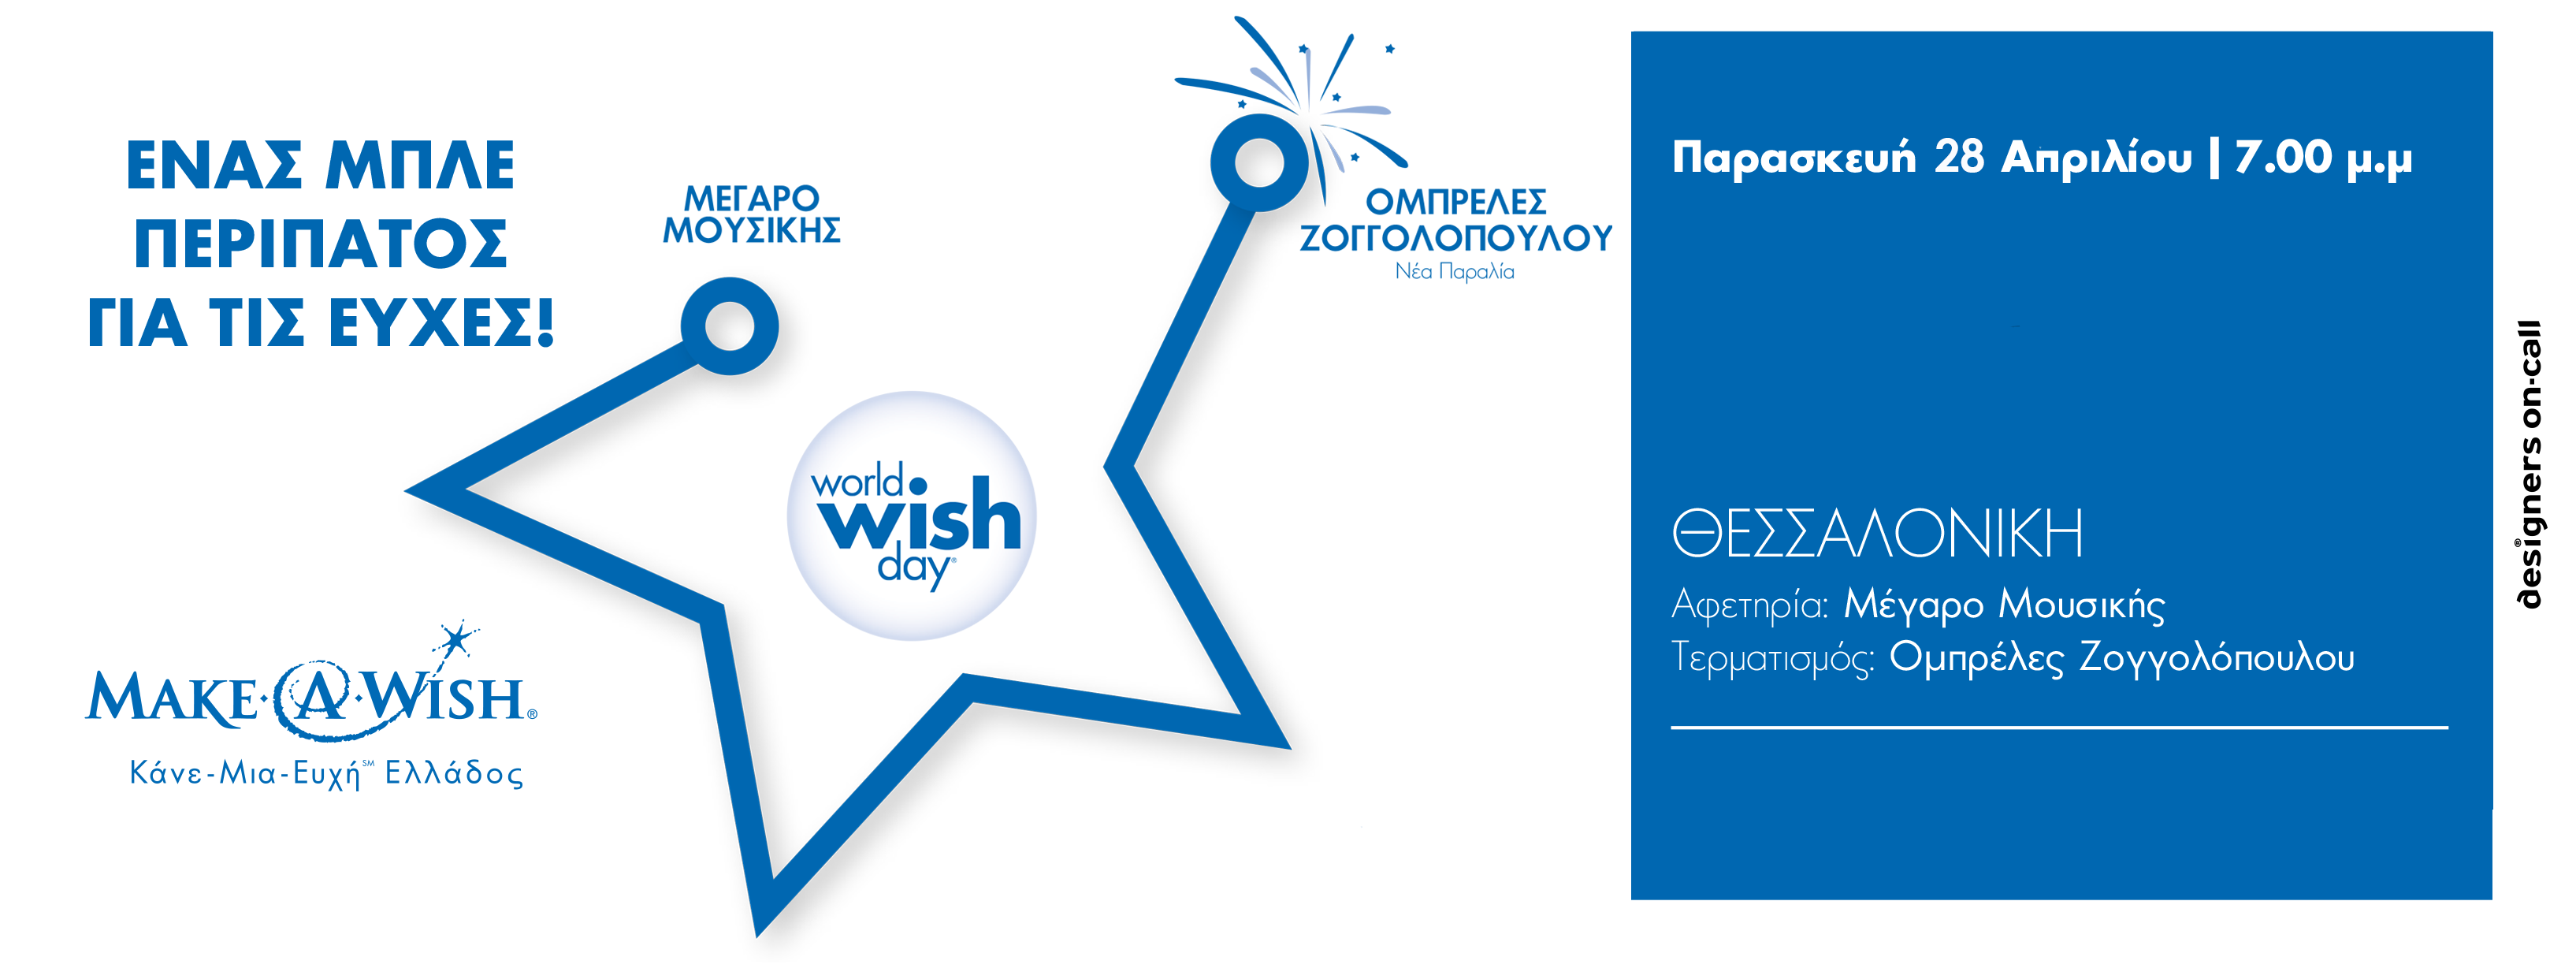 make-a-wish_walk-for-wishes_-fb-cover-page_kz